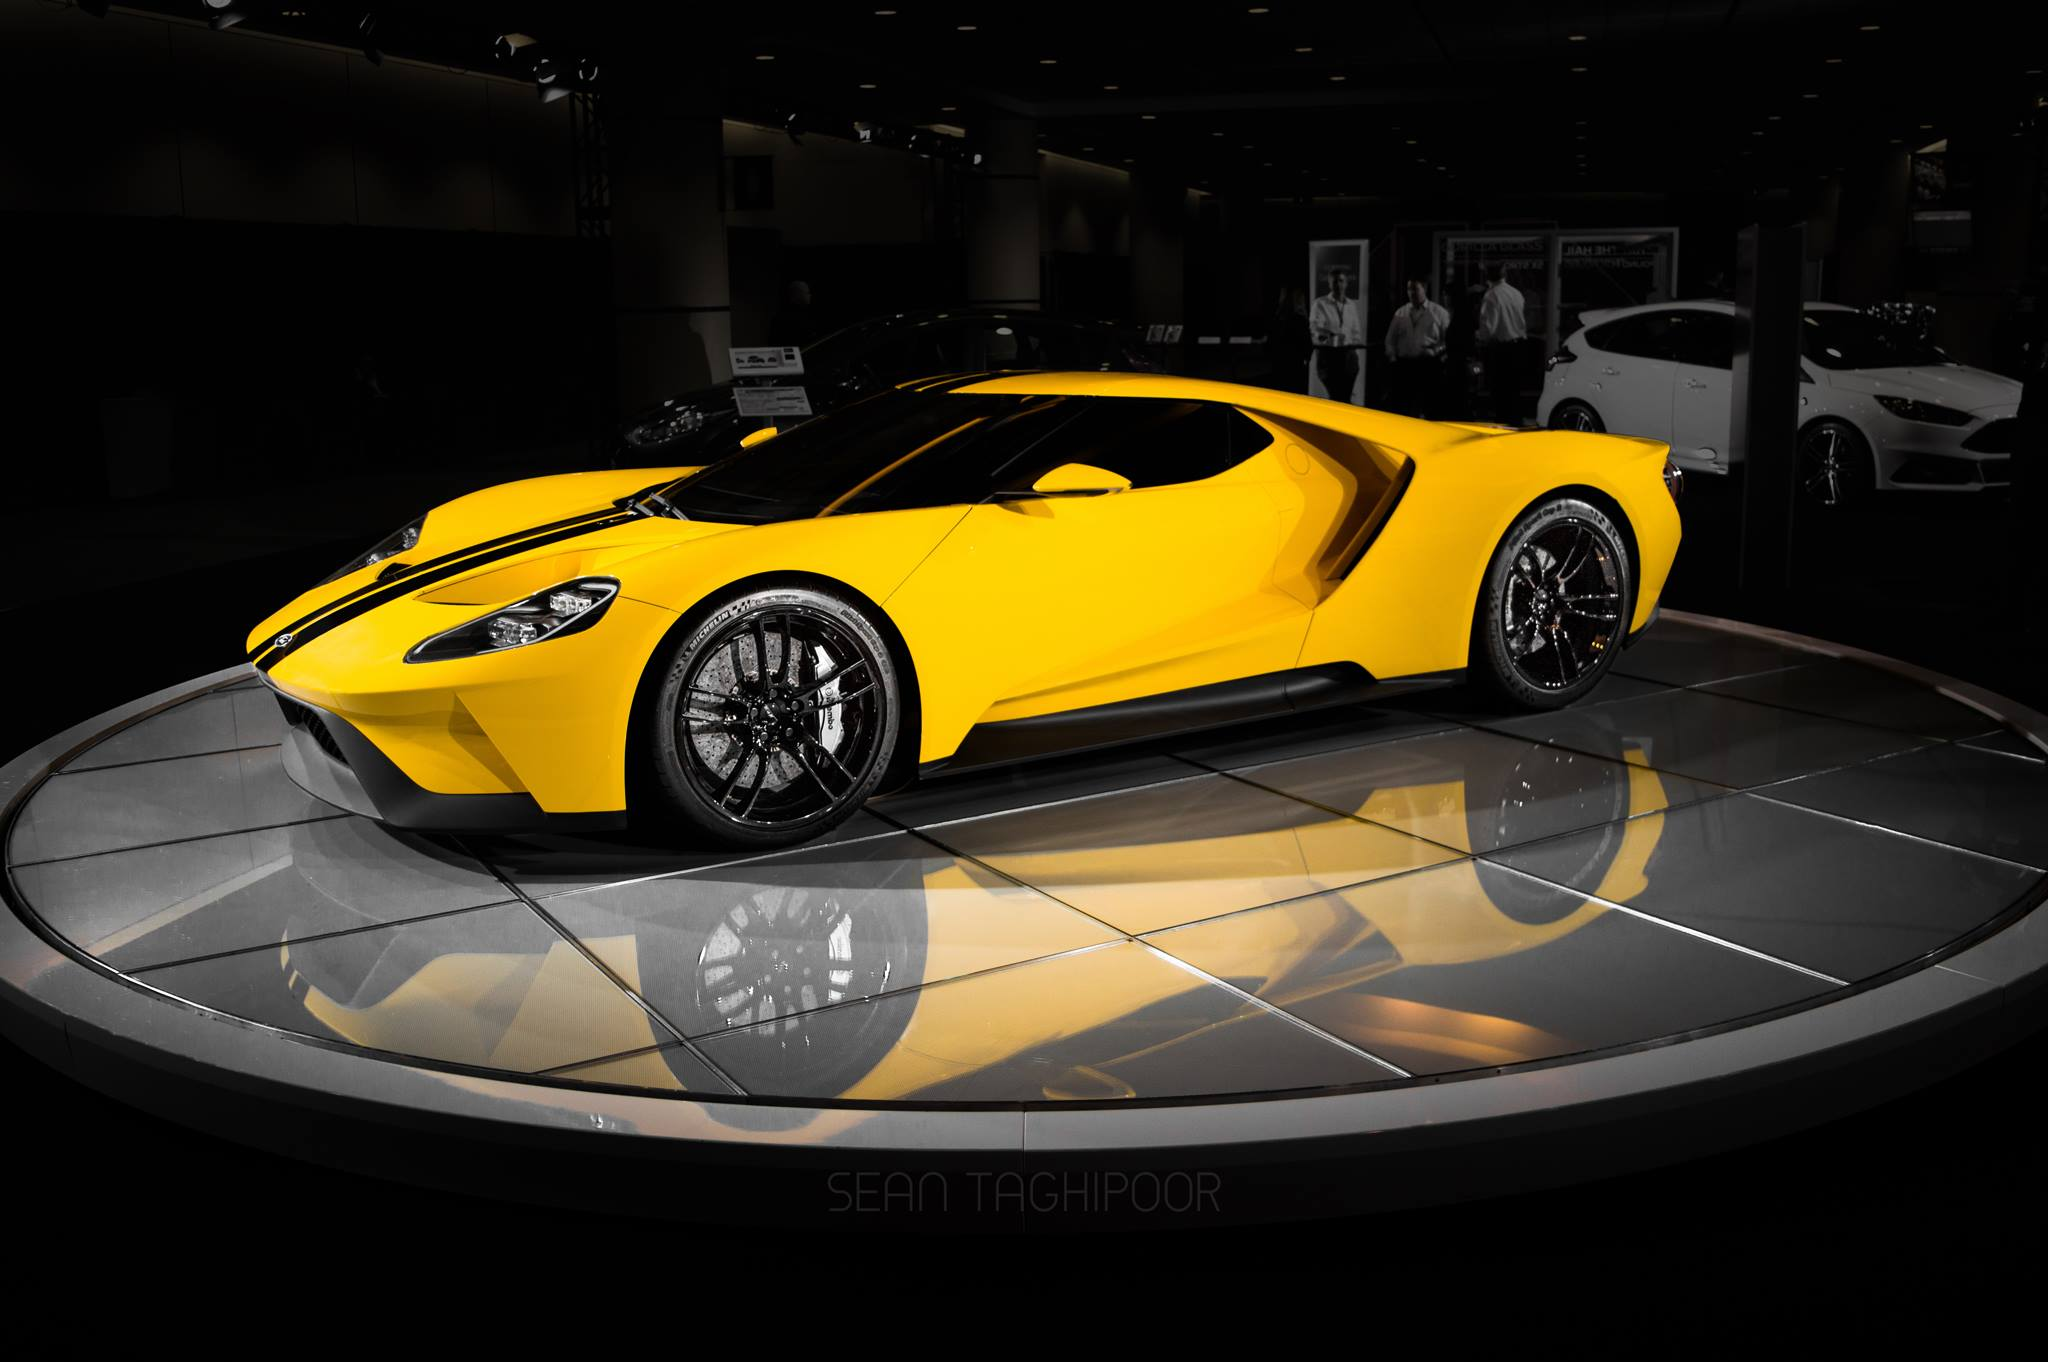 Photo of the Day: First Yellow 2017 Ford GT - GTspirit